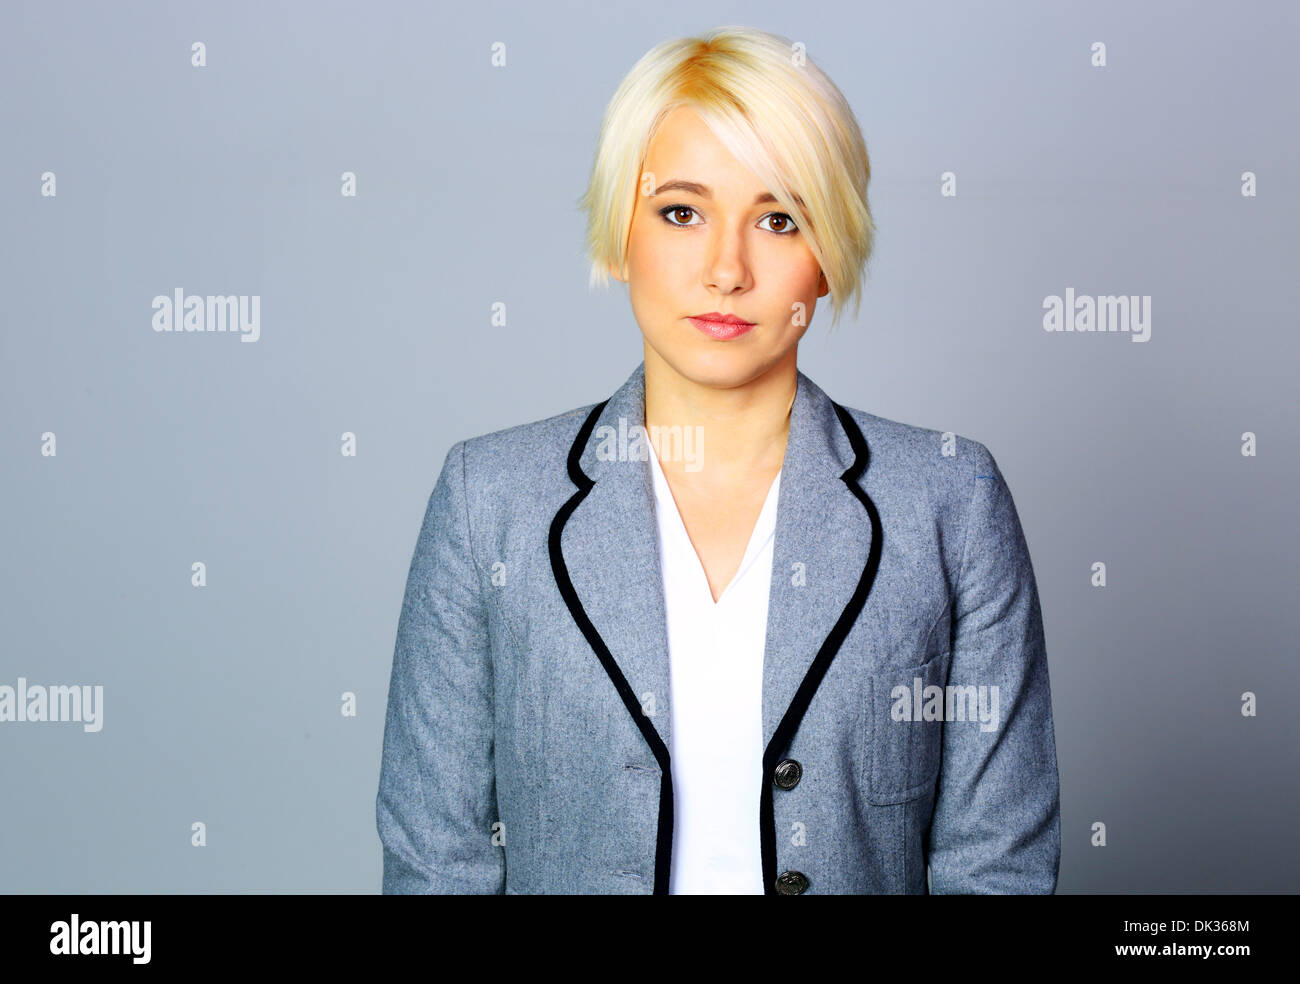 Thoughtfull businesswoman in gray jacket standing on gray background - Stock Image